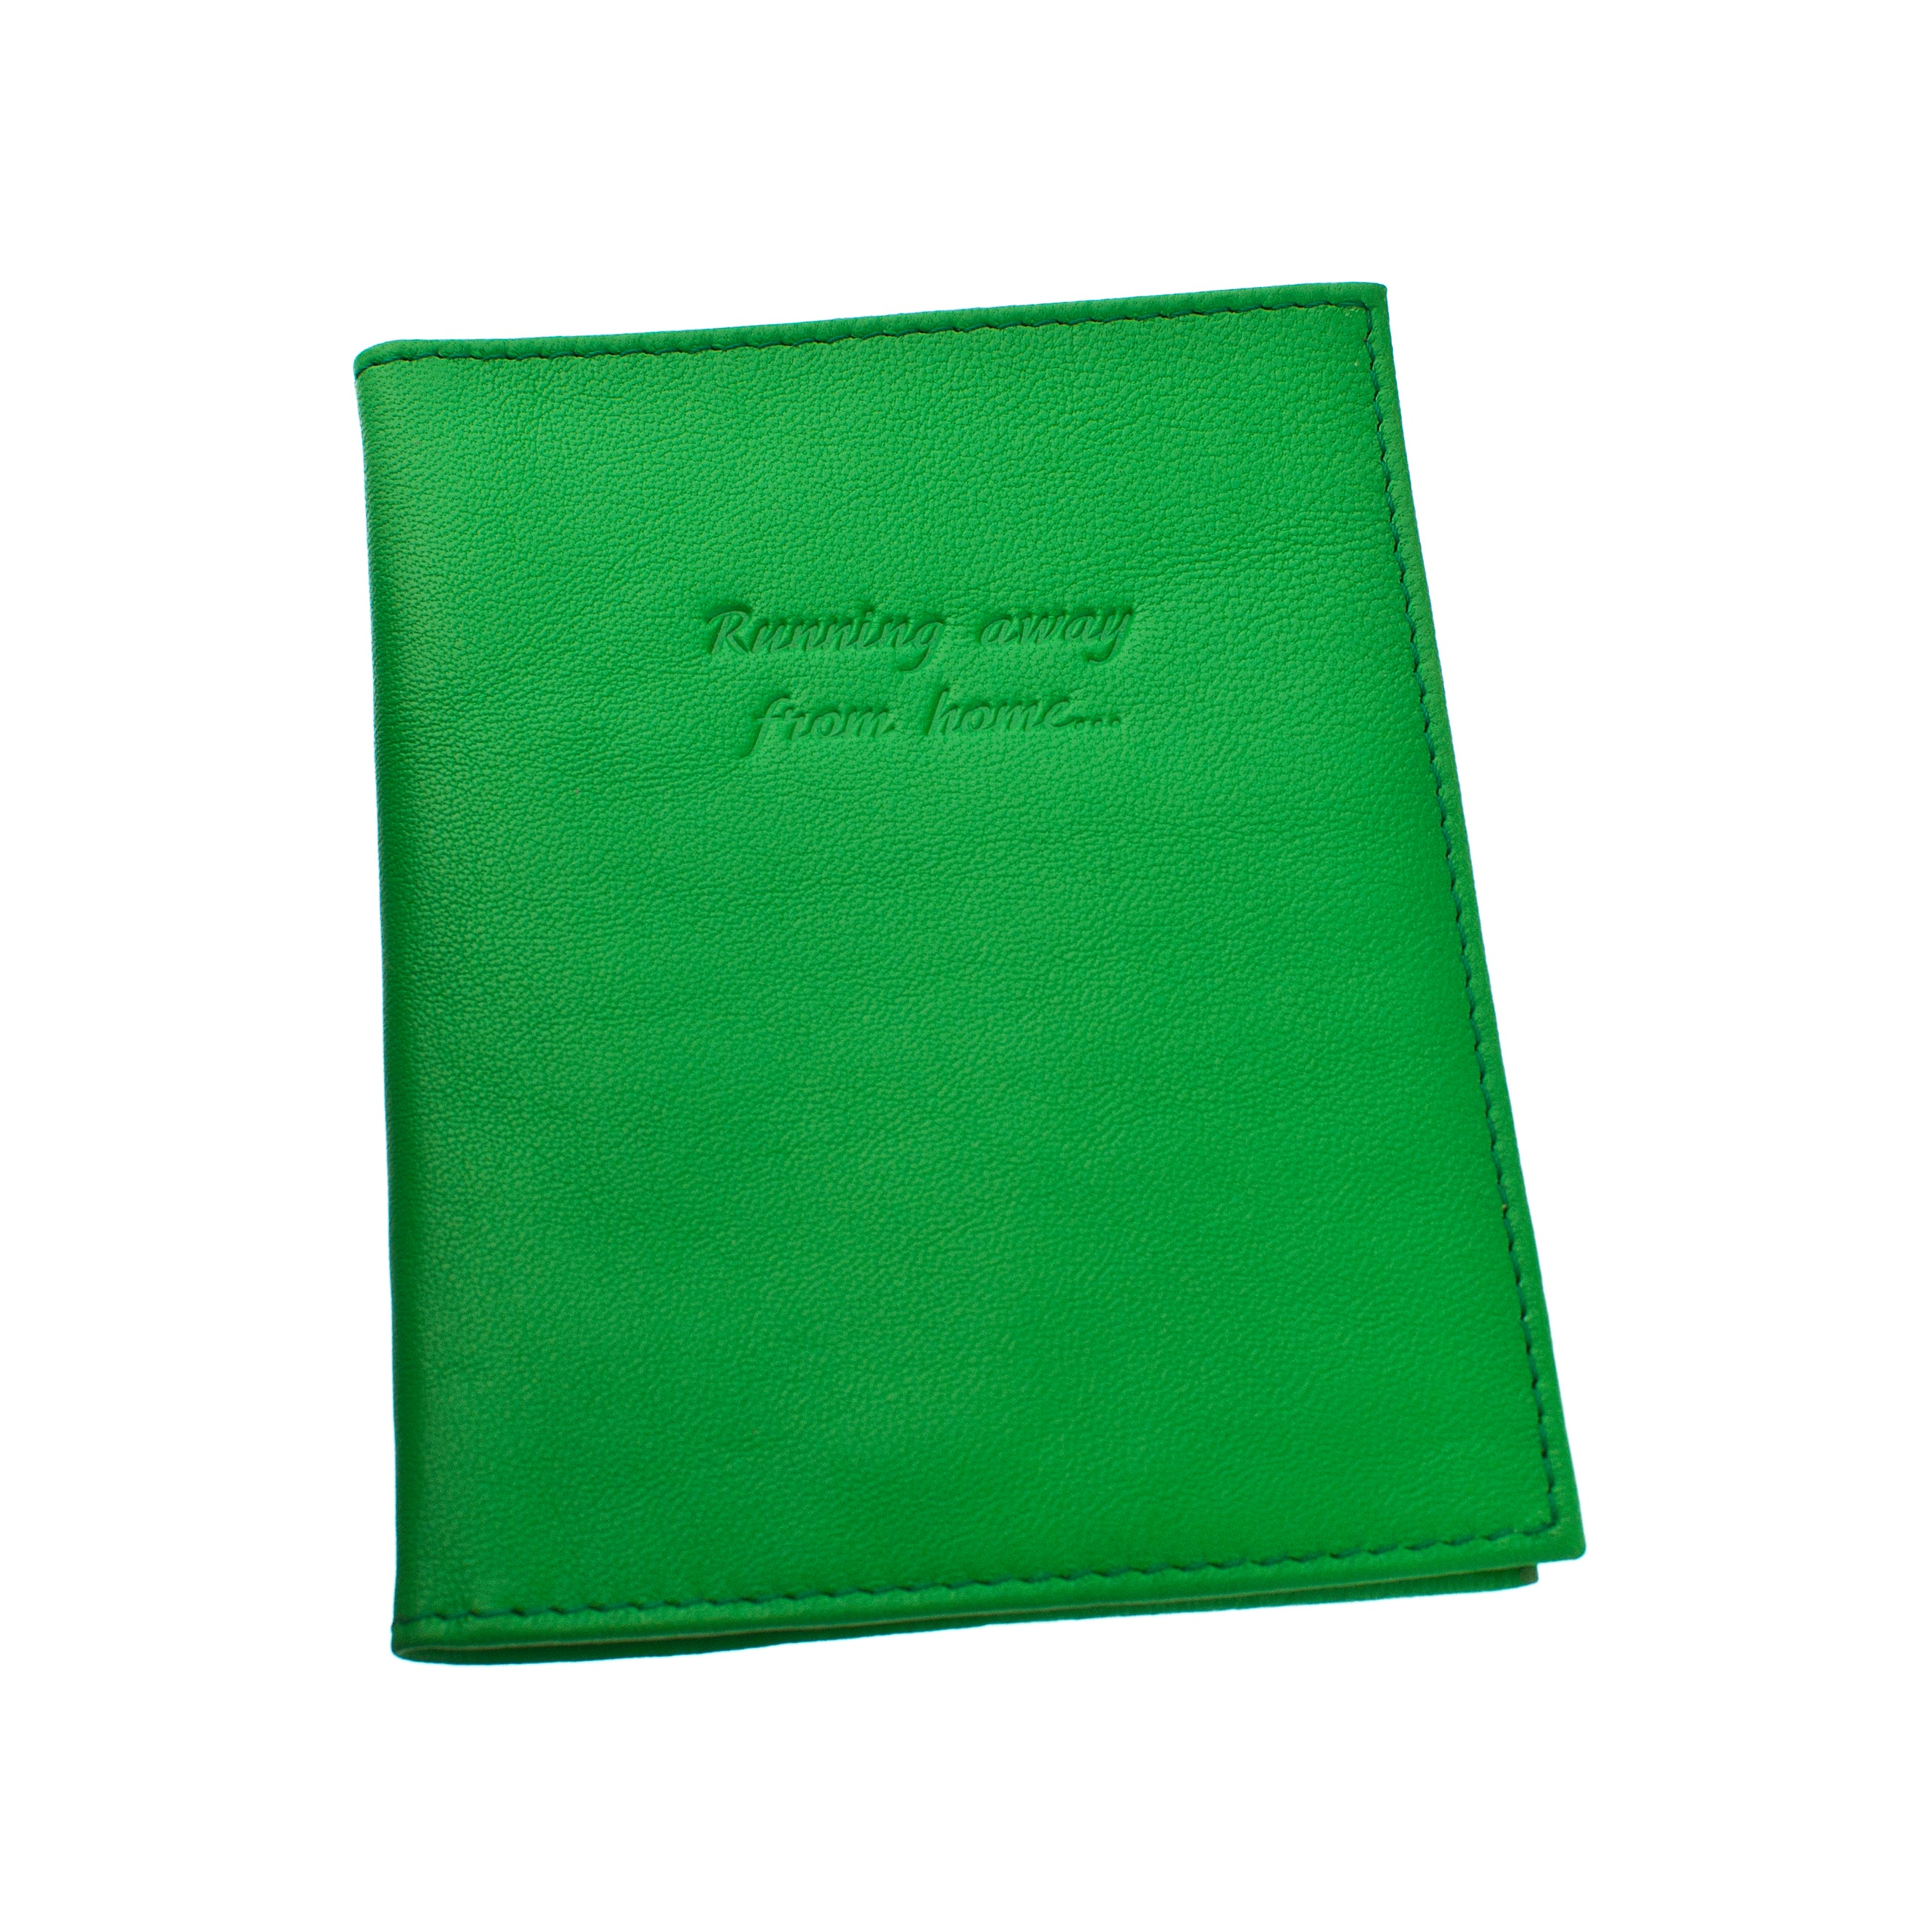 Deluxe Passport Cover with Card Slots ~ Shamrock Green Genuine Leather